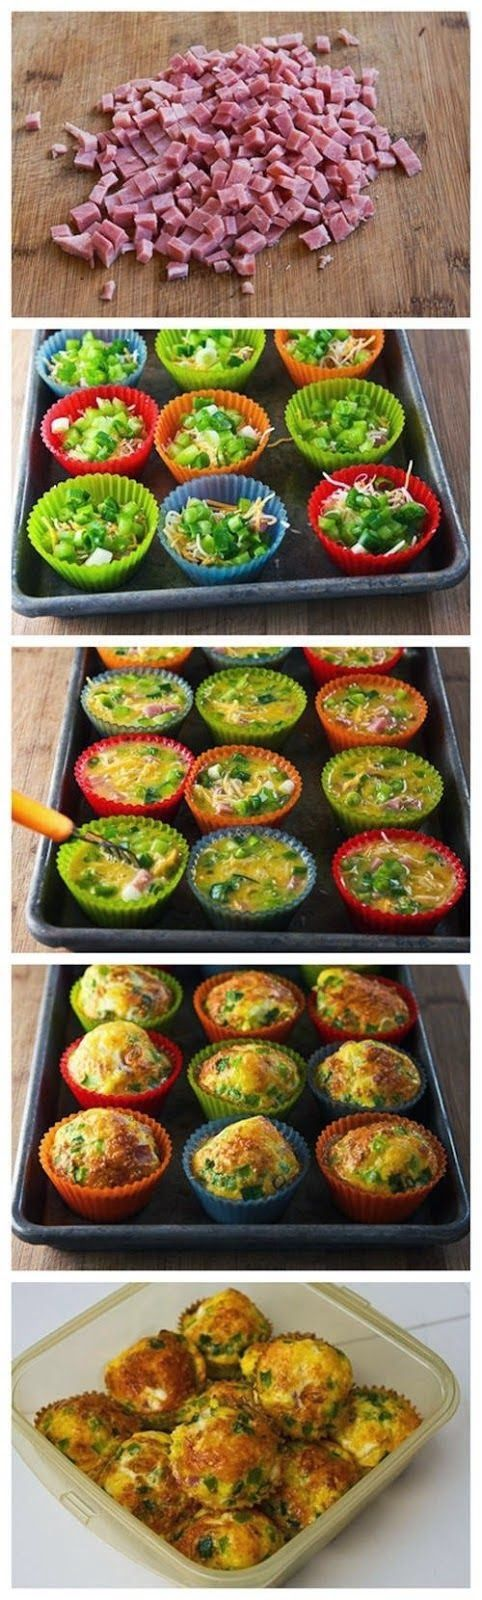 Egg Muffins with Ham, Cheese and Bell Peppers | Food Blog